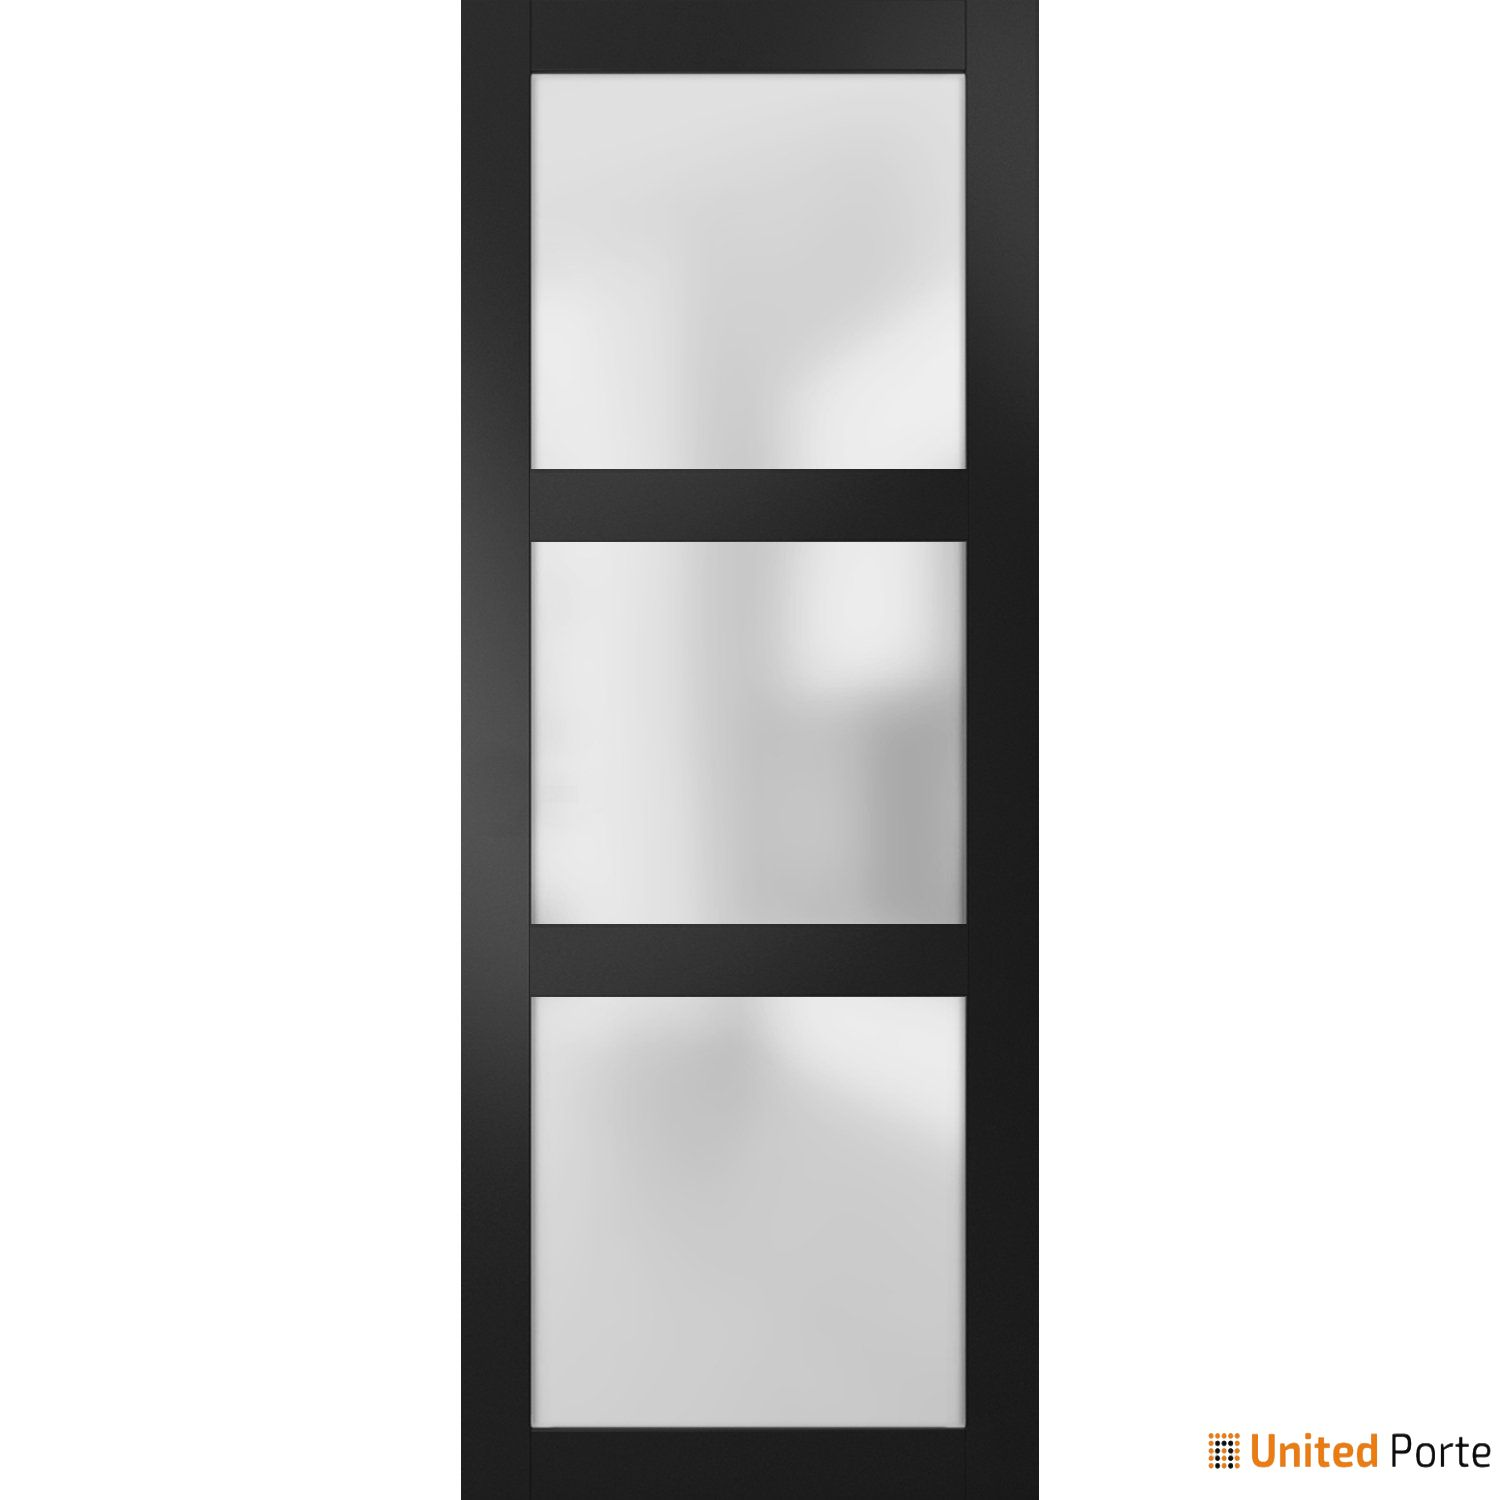 Lucia 2552 Matte Black Sturdy Barn Door Frosted Glass Slab   Solid Panel Interior Barn Doors